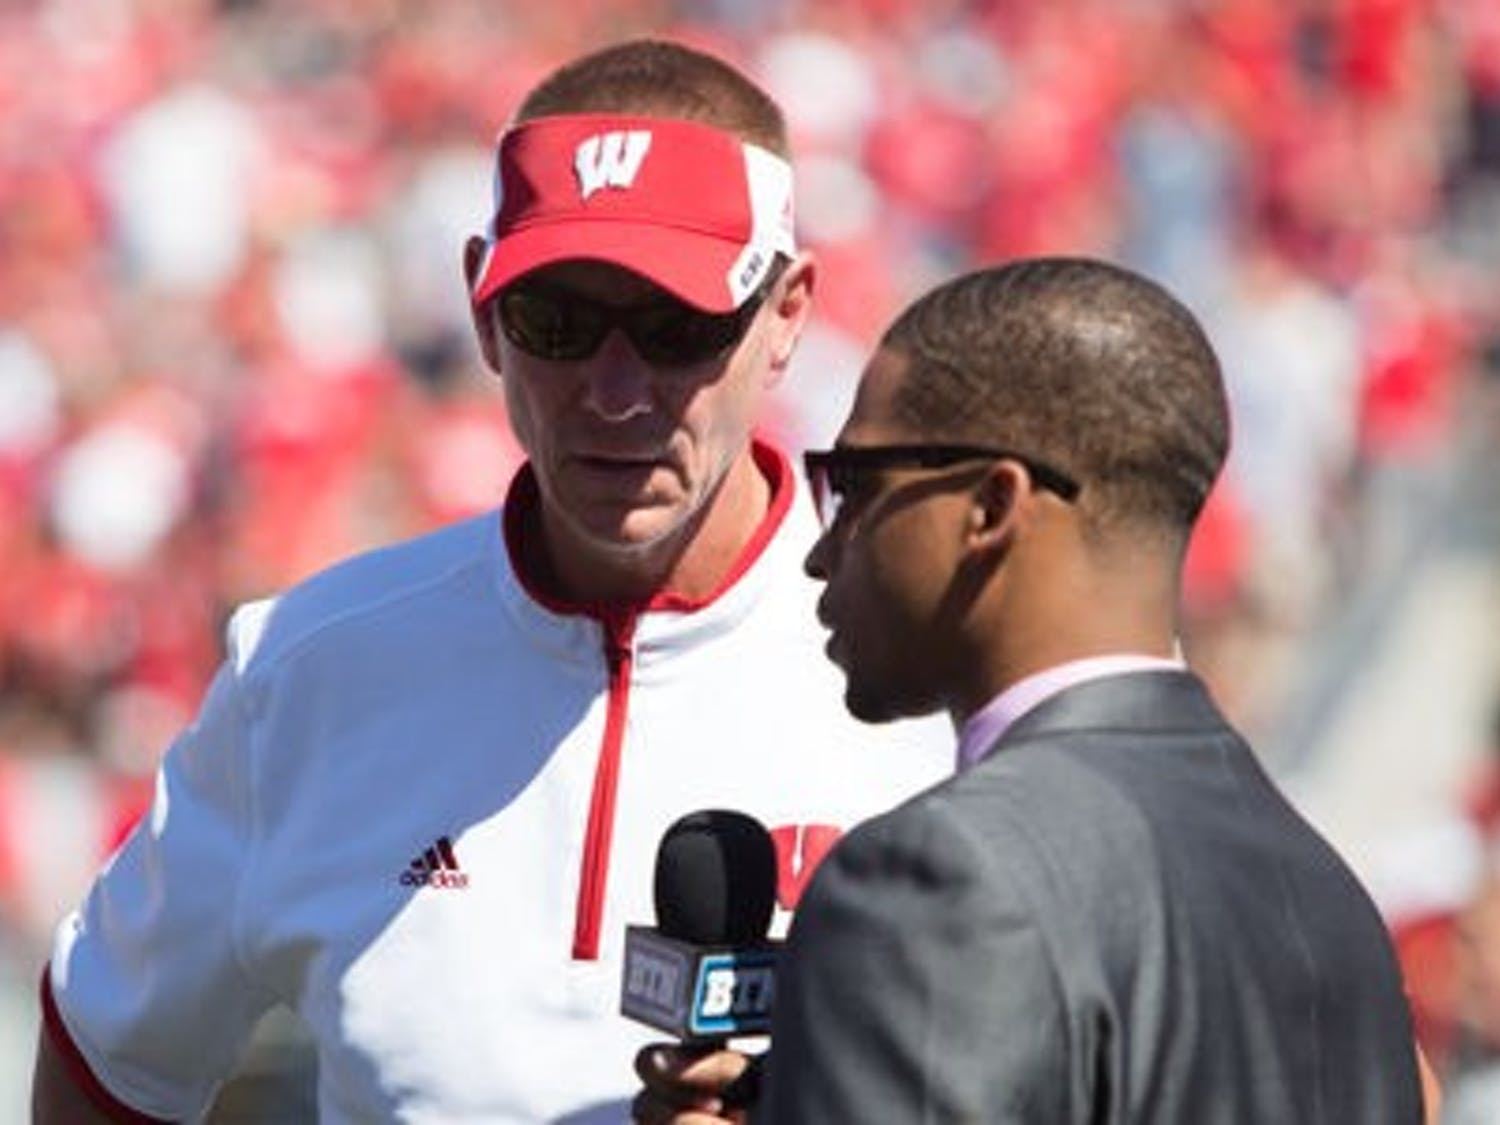 Head coach Gary Andersen has Wisconsin rolling after the Badgers dominated Bowling Green Saturday in a 68-17 blowout.